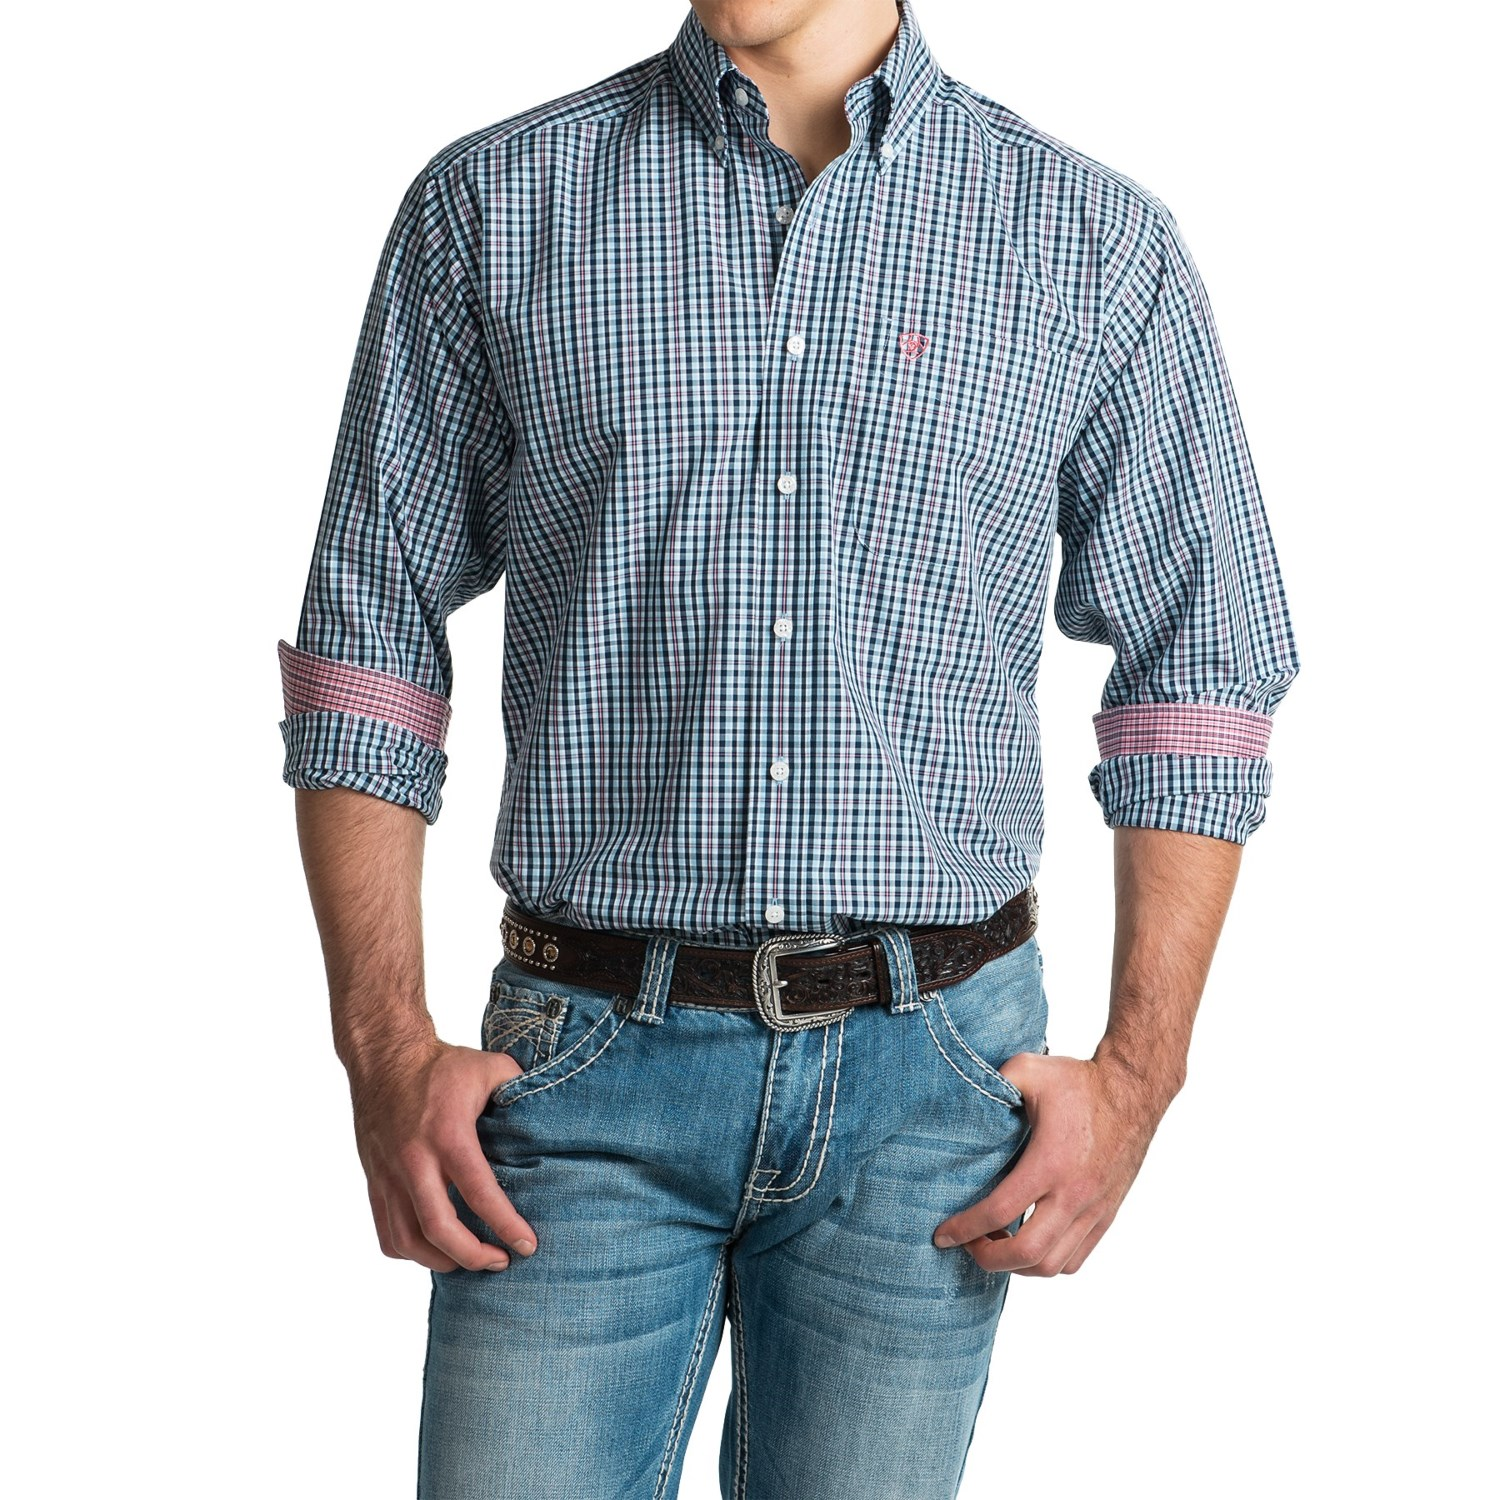 Ariat Wrinkle Free Vaughn Shirt For Men Save 53